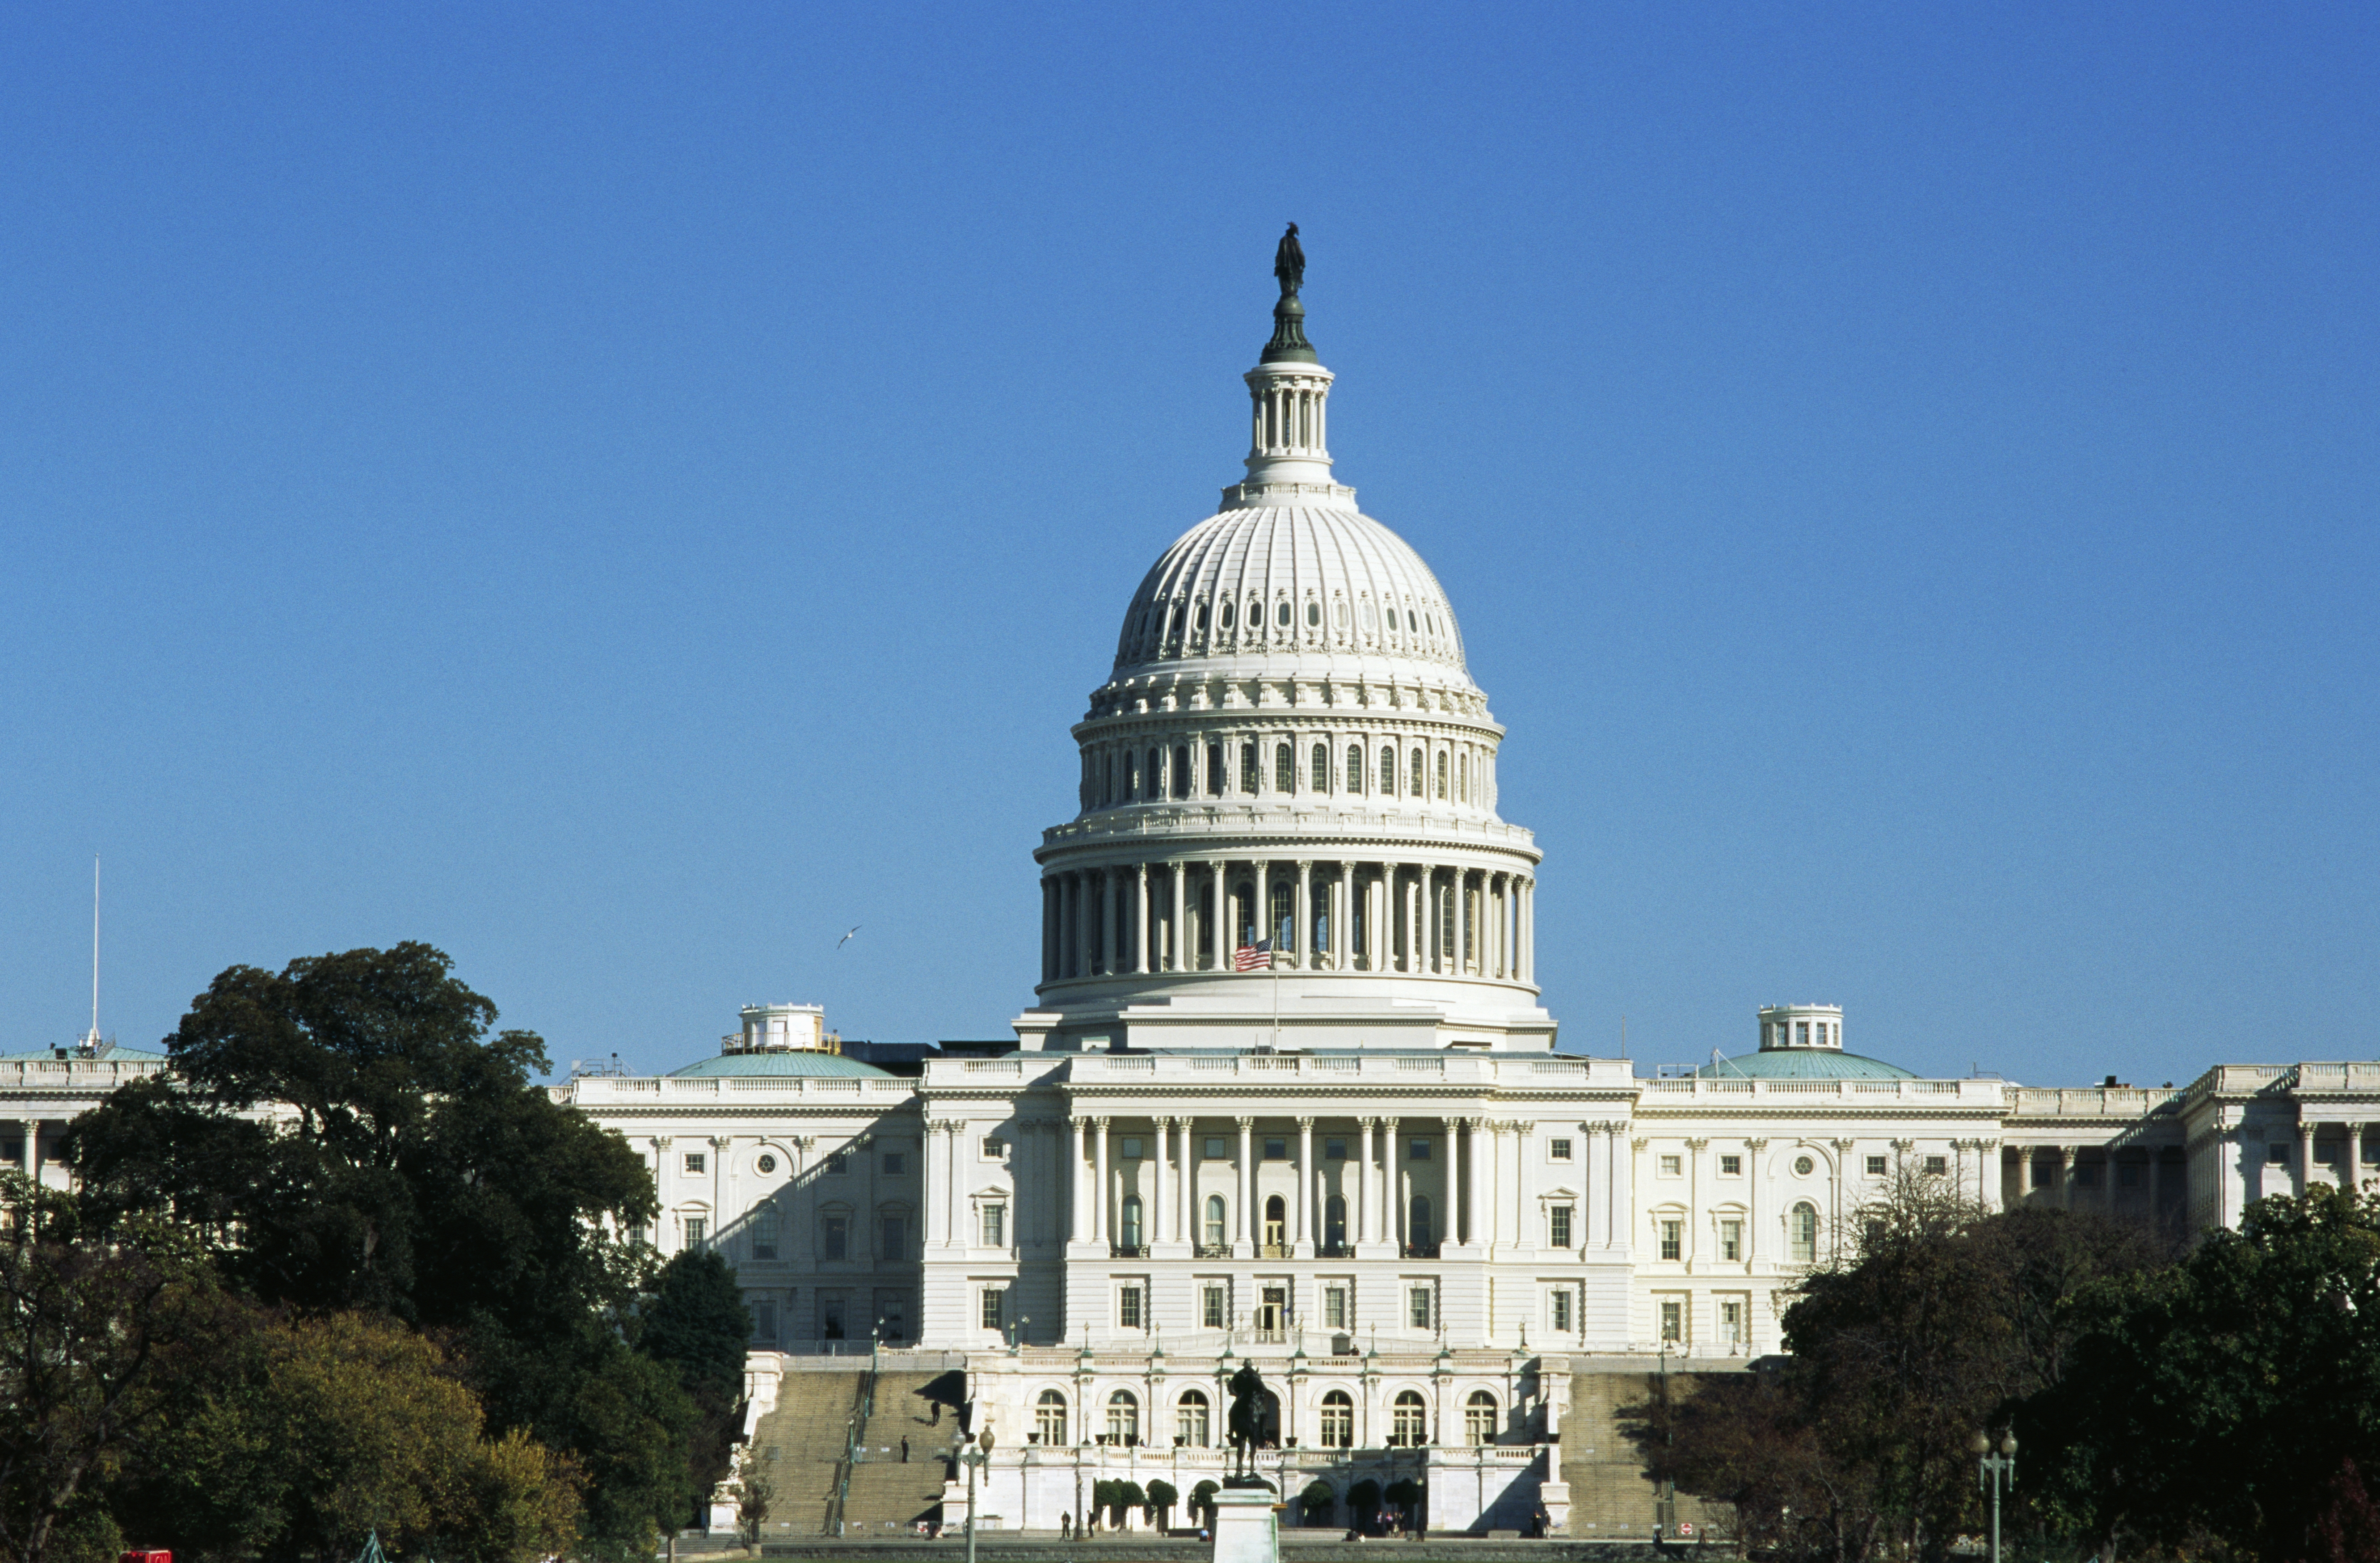 The Capitol, seat of the United States Congress